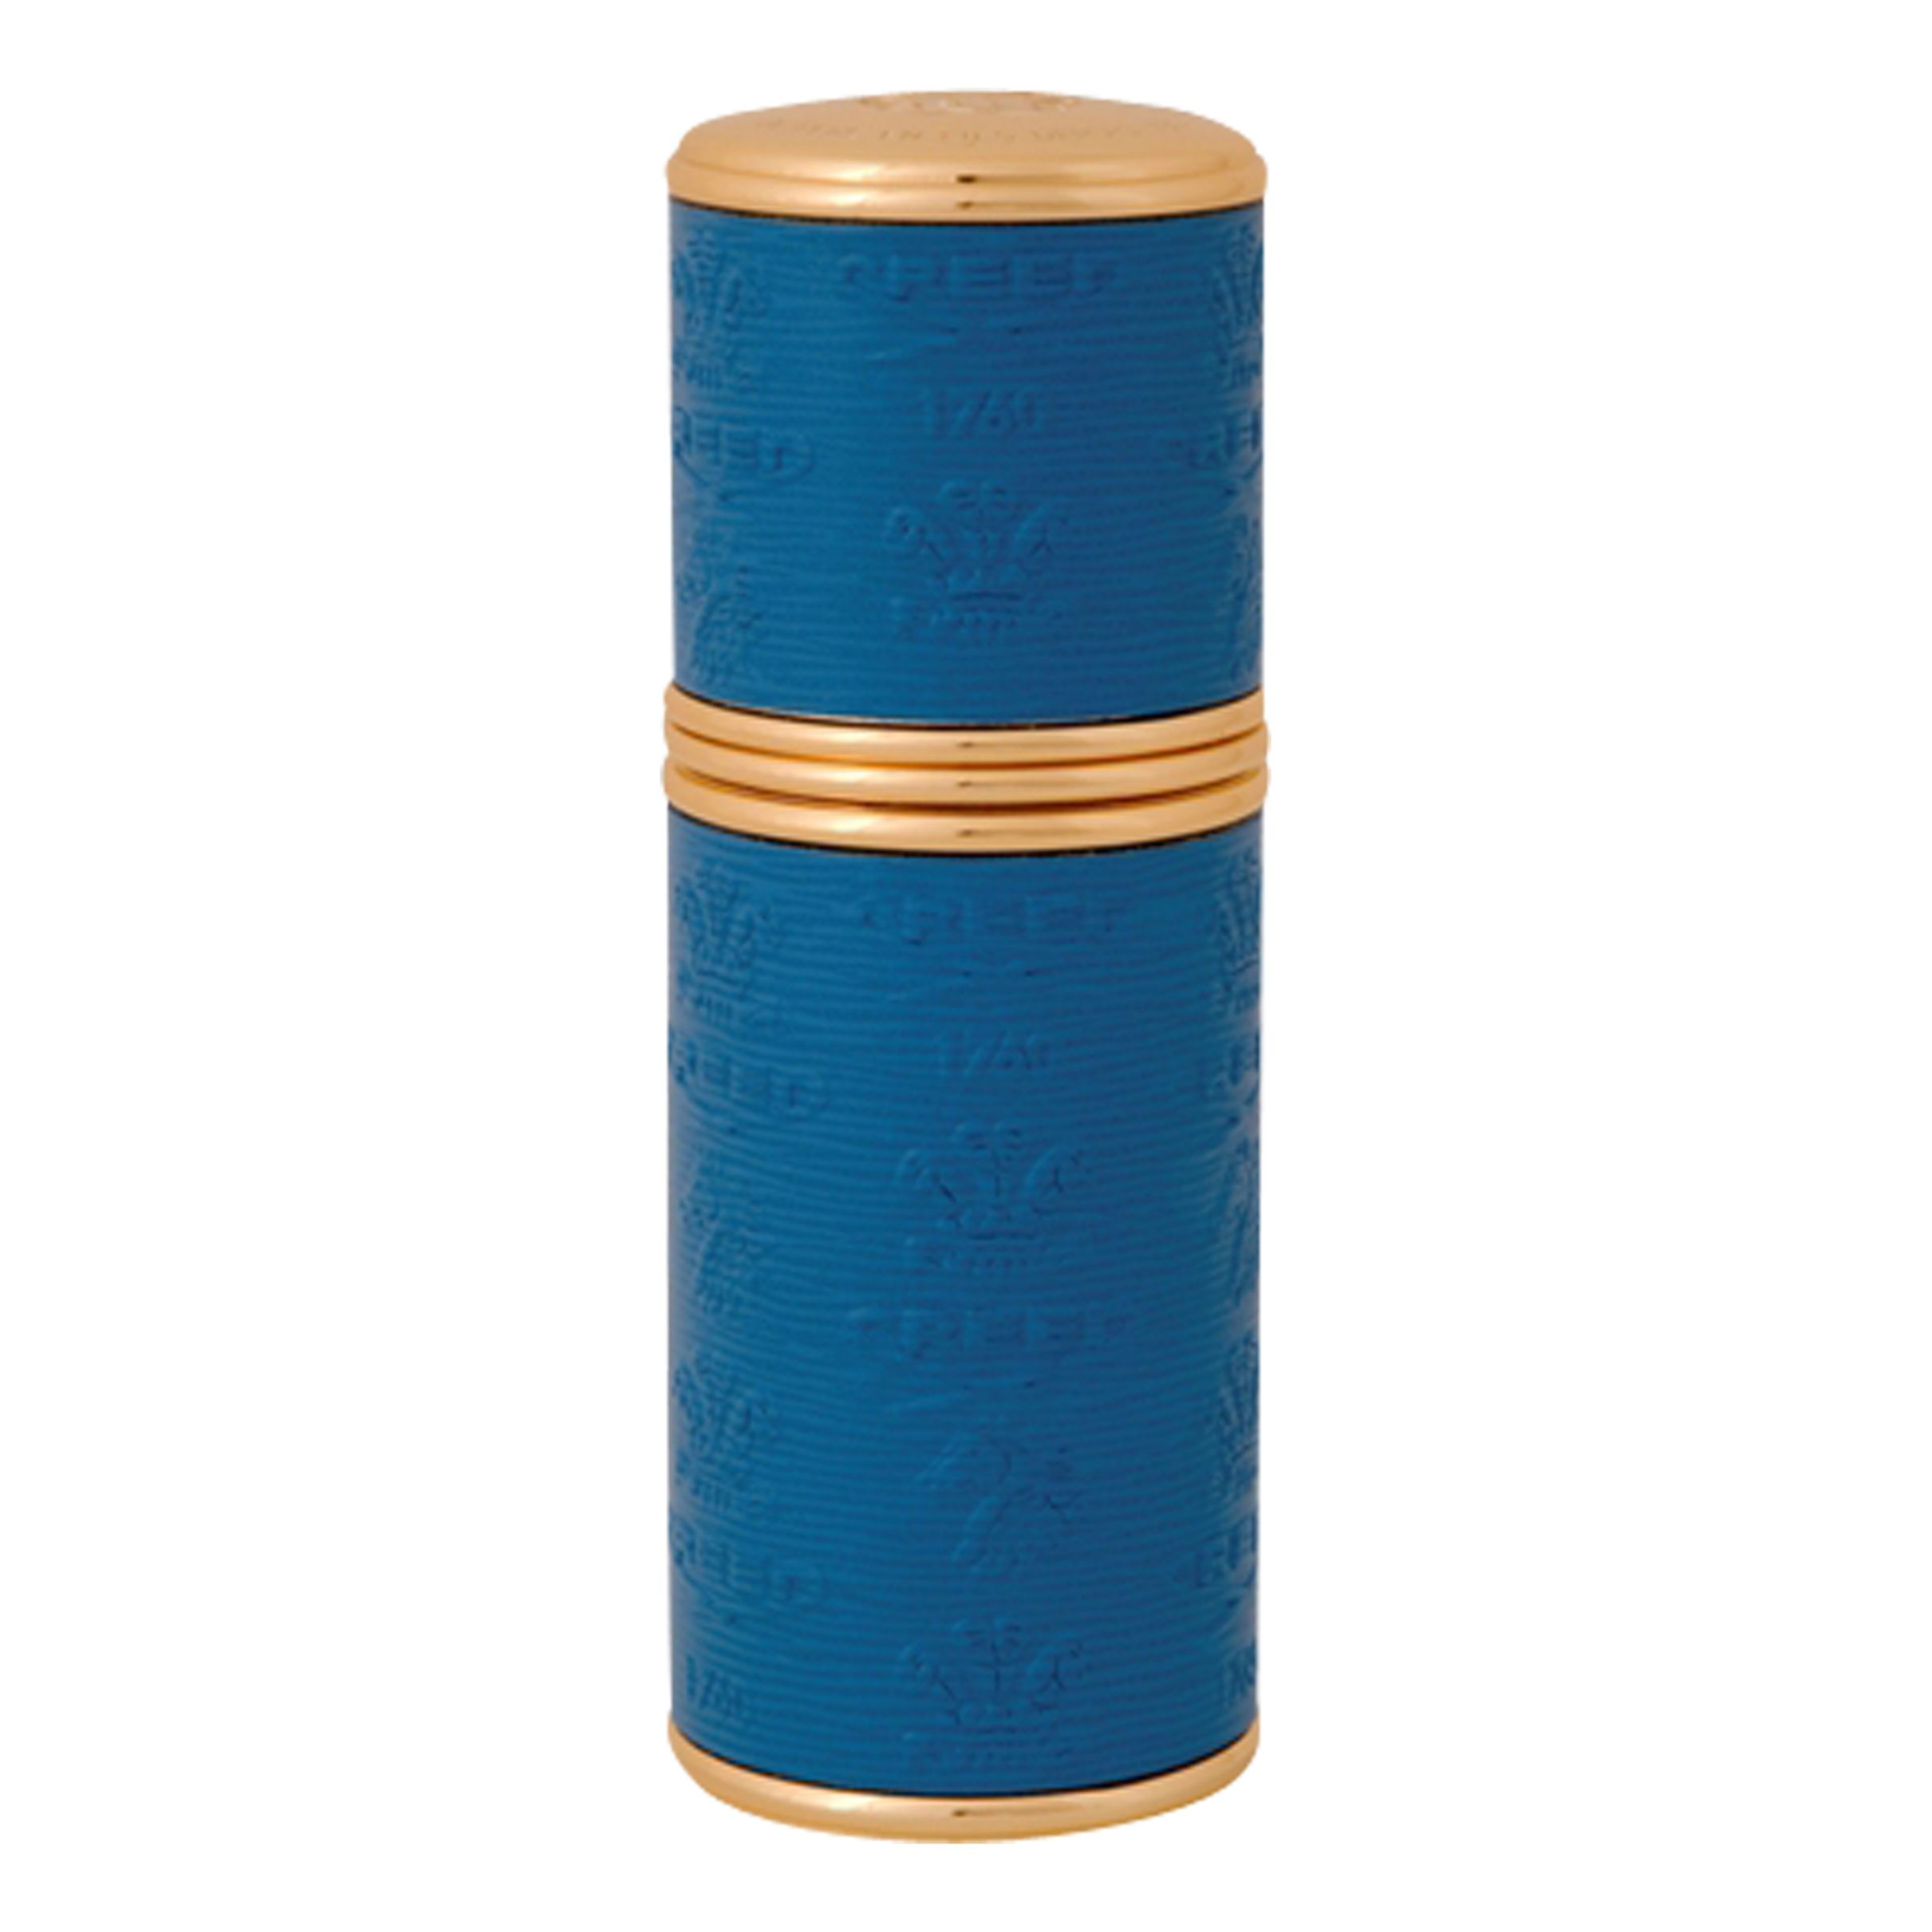 Creed CREED Gold Trim Leather Bound Refillable Atomiser, 50ml